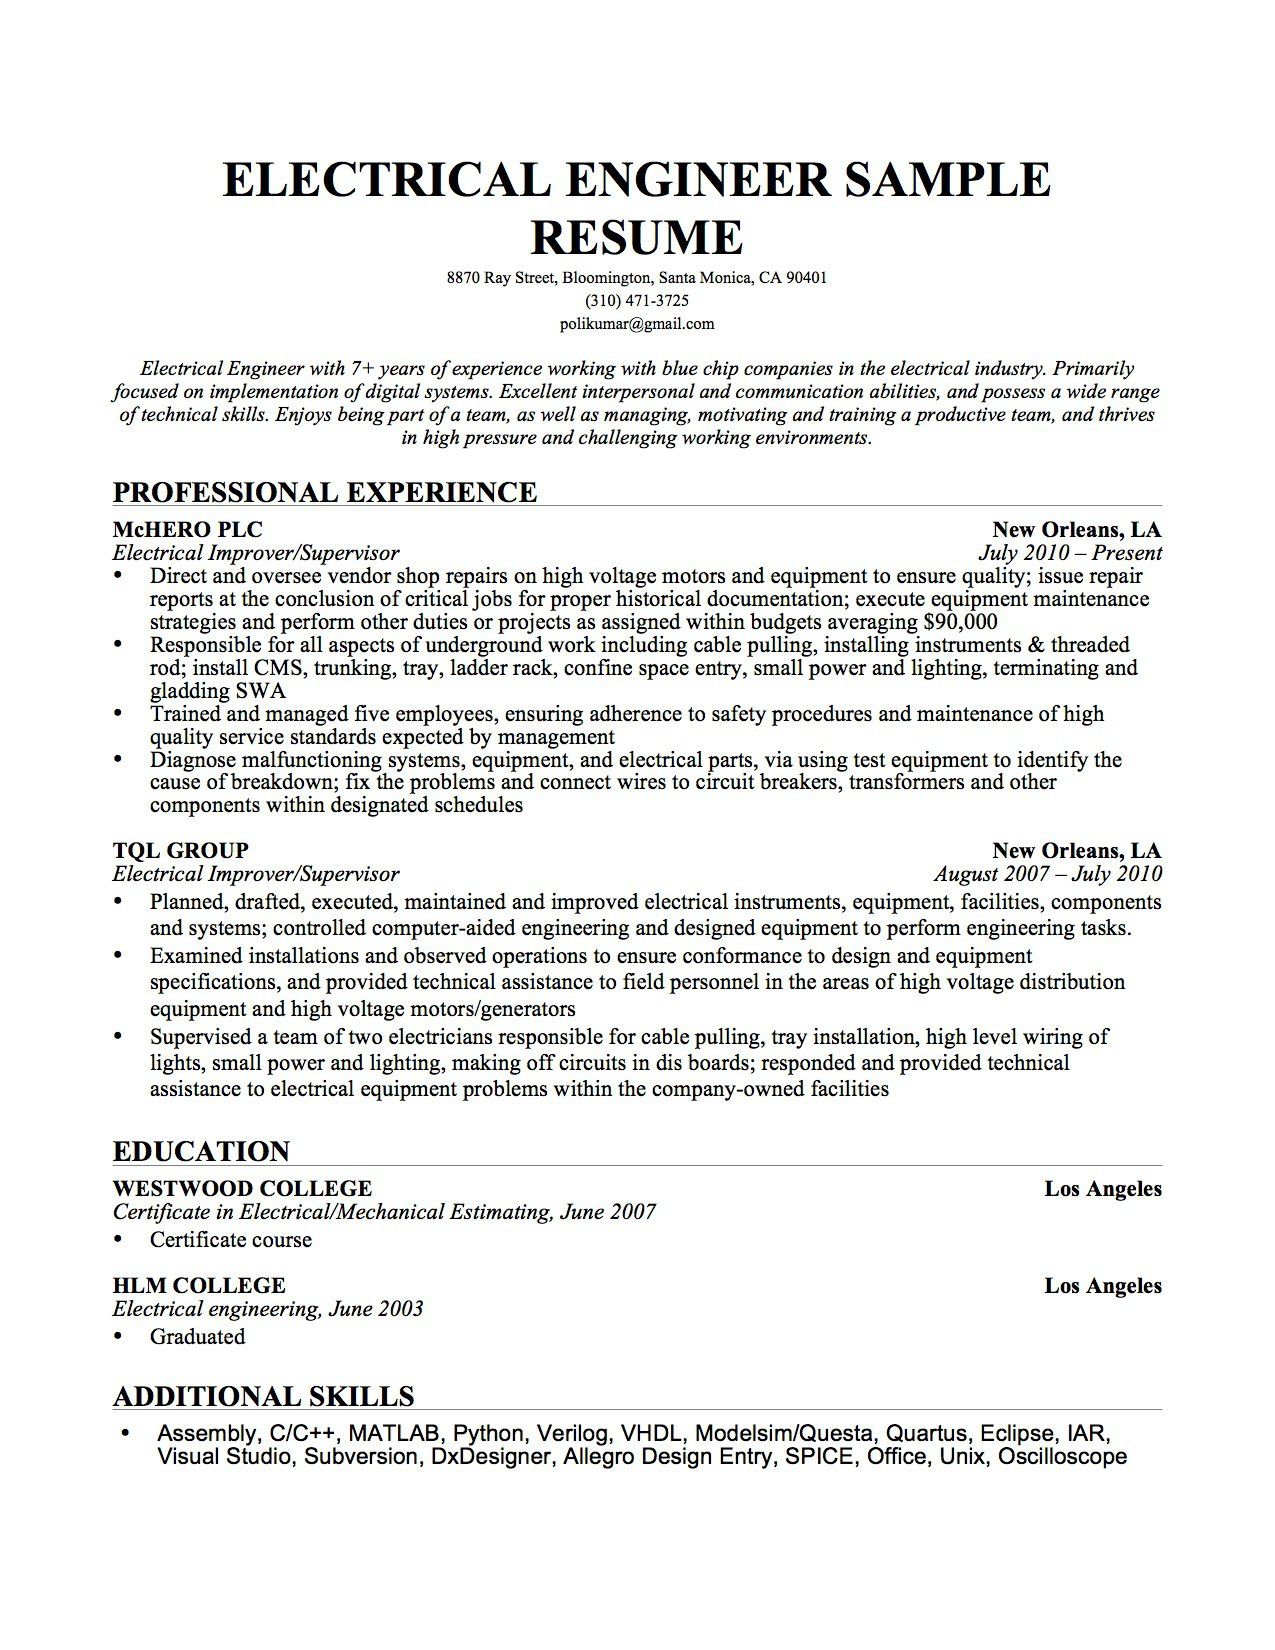 Biomedical Design Engineer Cover Letter Engineer Sample Resume Equipment Fixed Biomedical Technician Cover